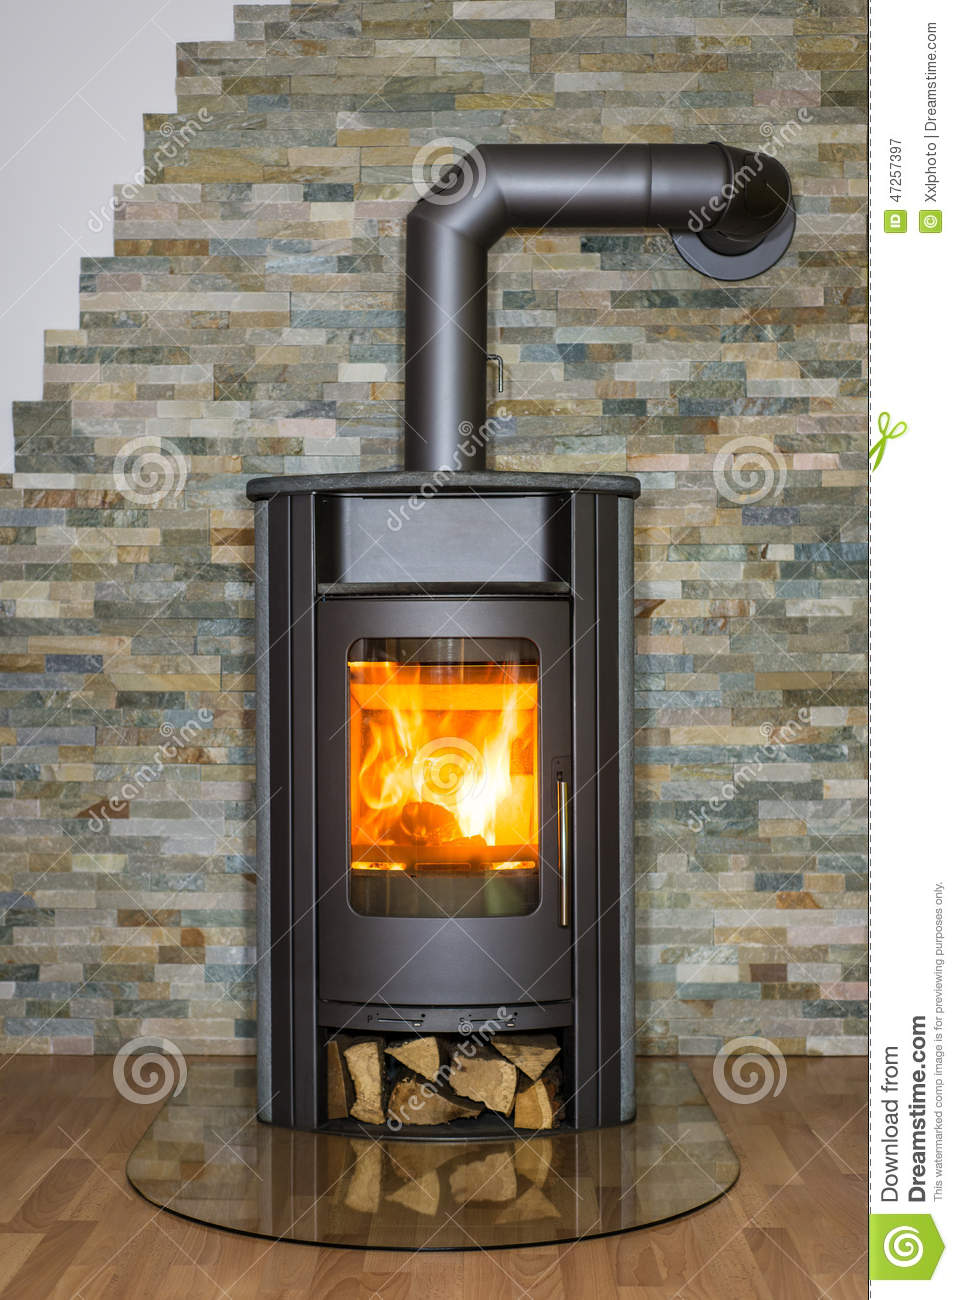 images of living rooms with wood burners french room set burning stove in house stock image briquette